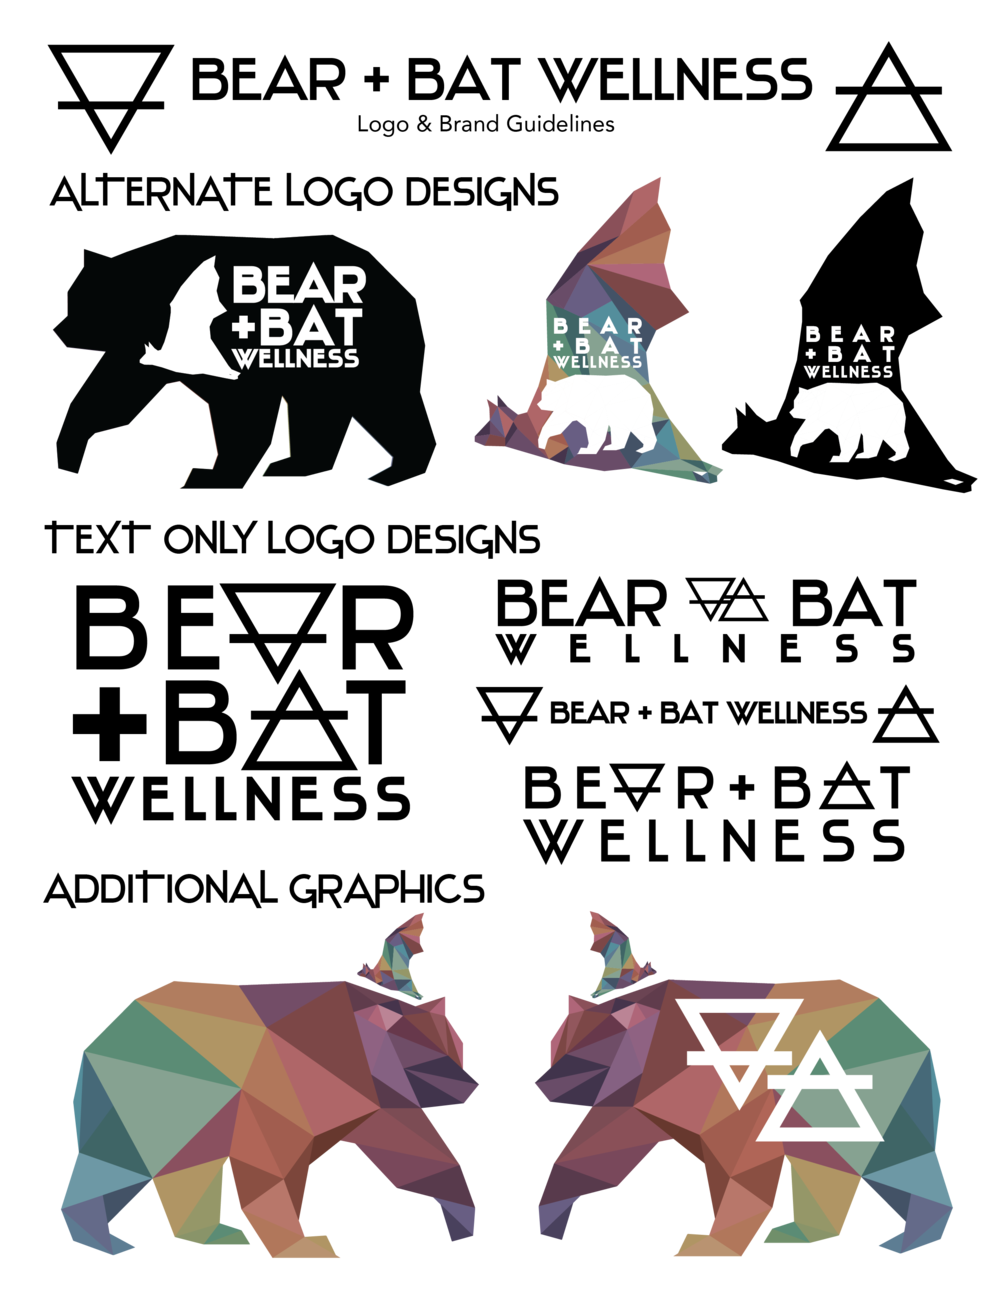 Bear + Bat Wellness Design Guide